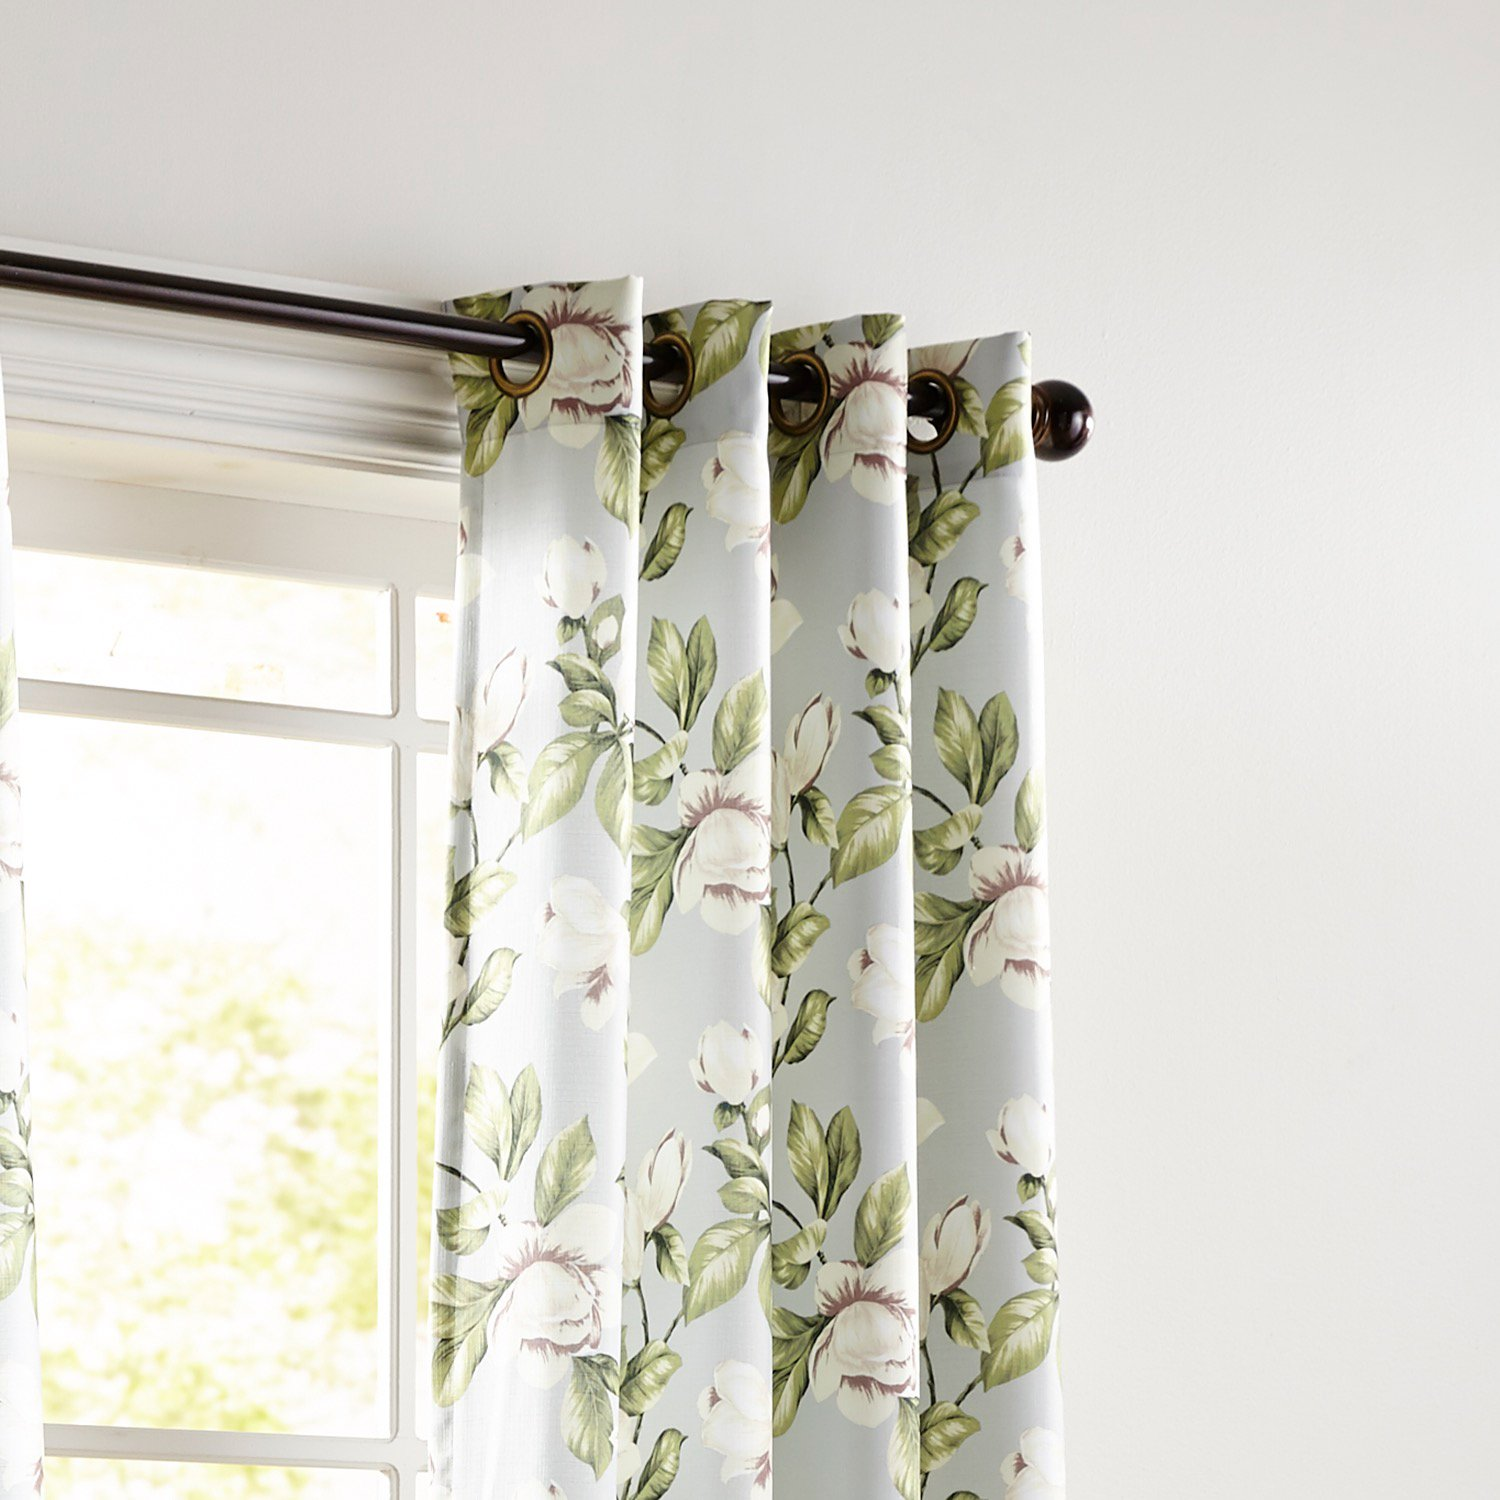 Pier 1 Imports Magnolia Floral Gray 96'' Grommet Curtain by